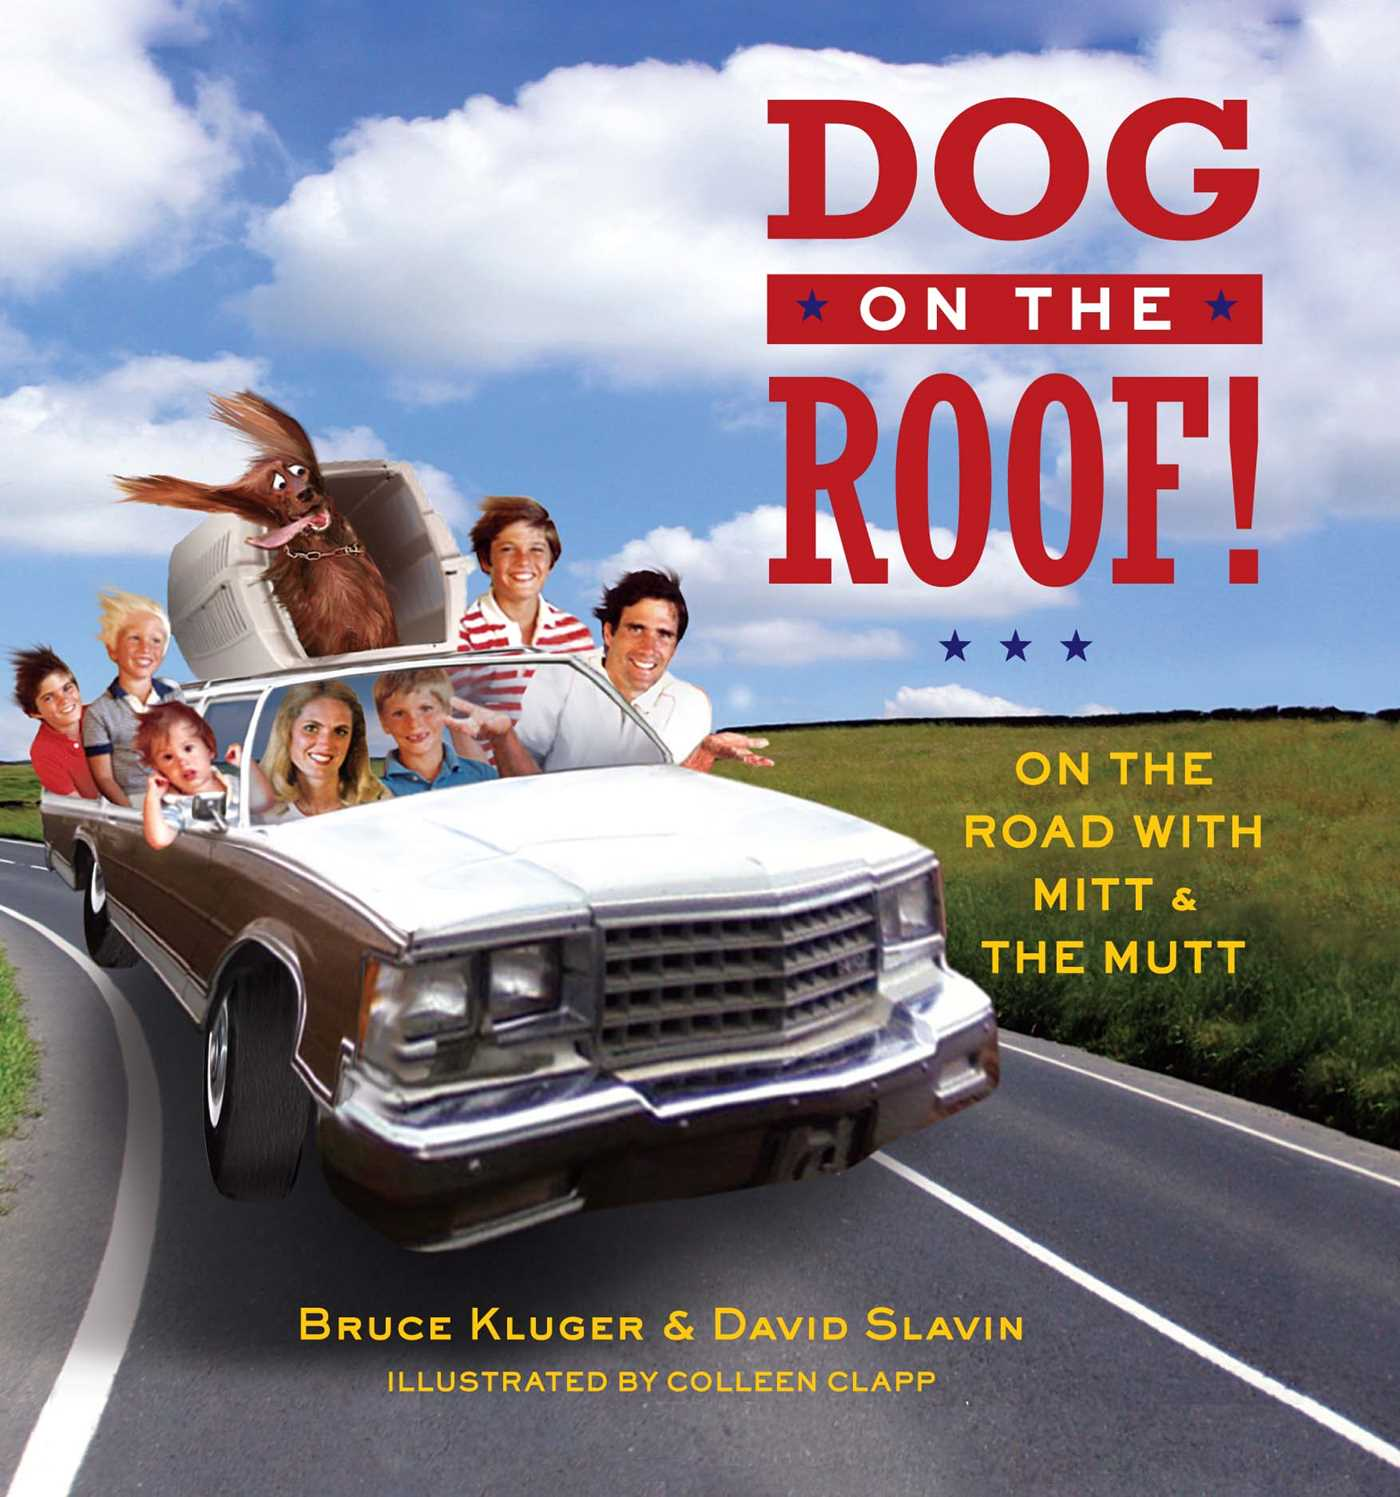 Dog on the roof 9781476708843 hr